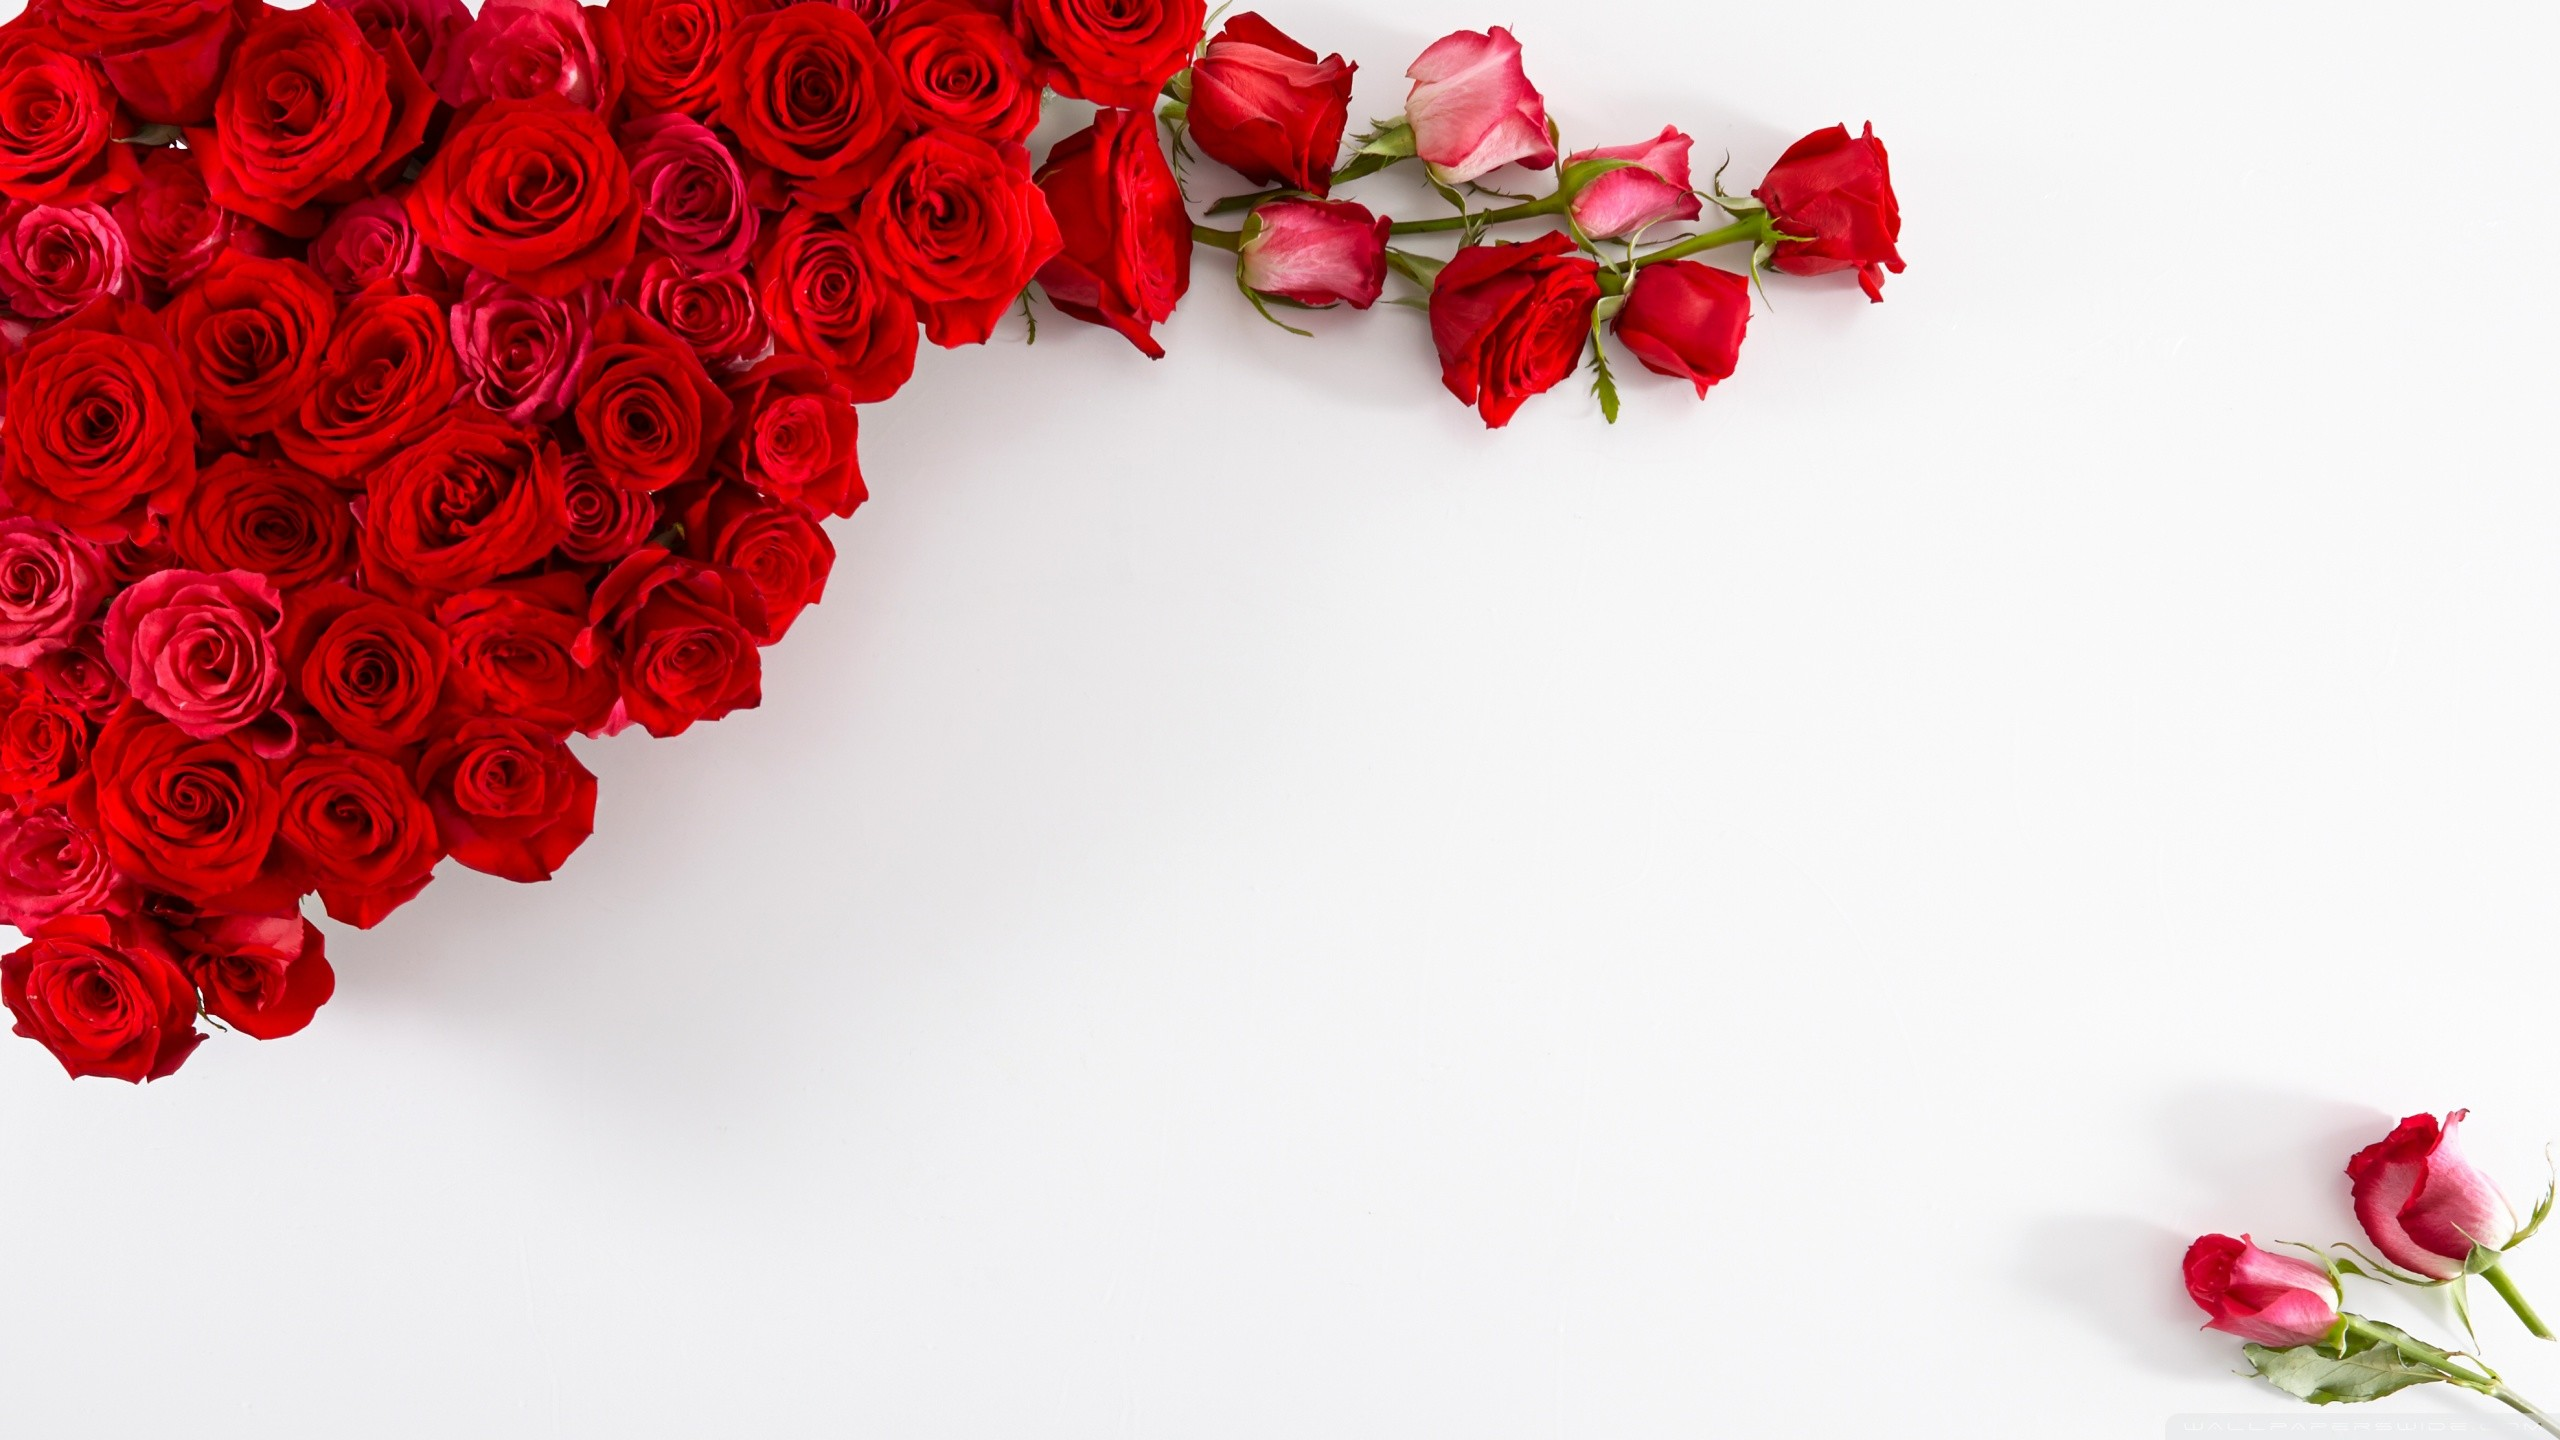 2560x1440 Red Roses on White Background HD desktop wallpaper : Widescreen